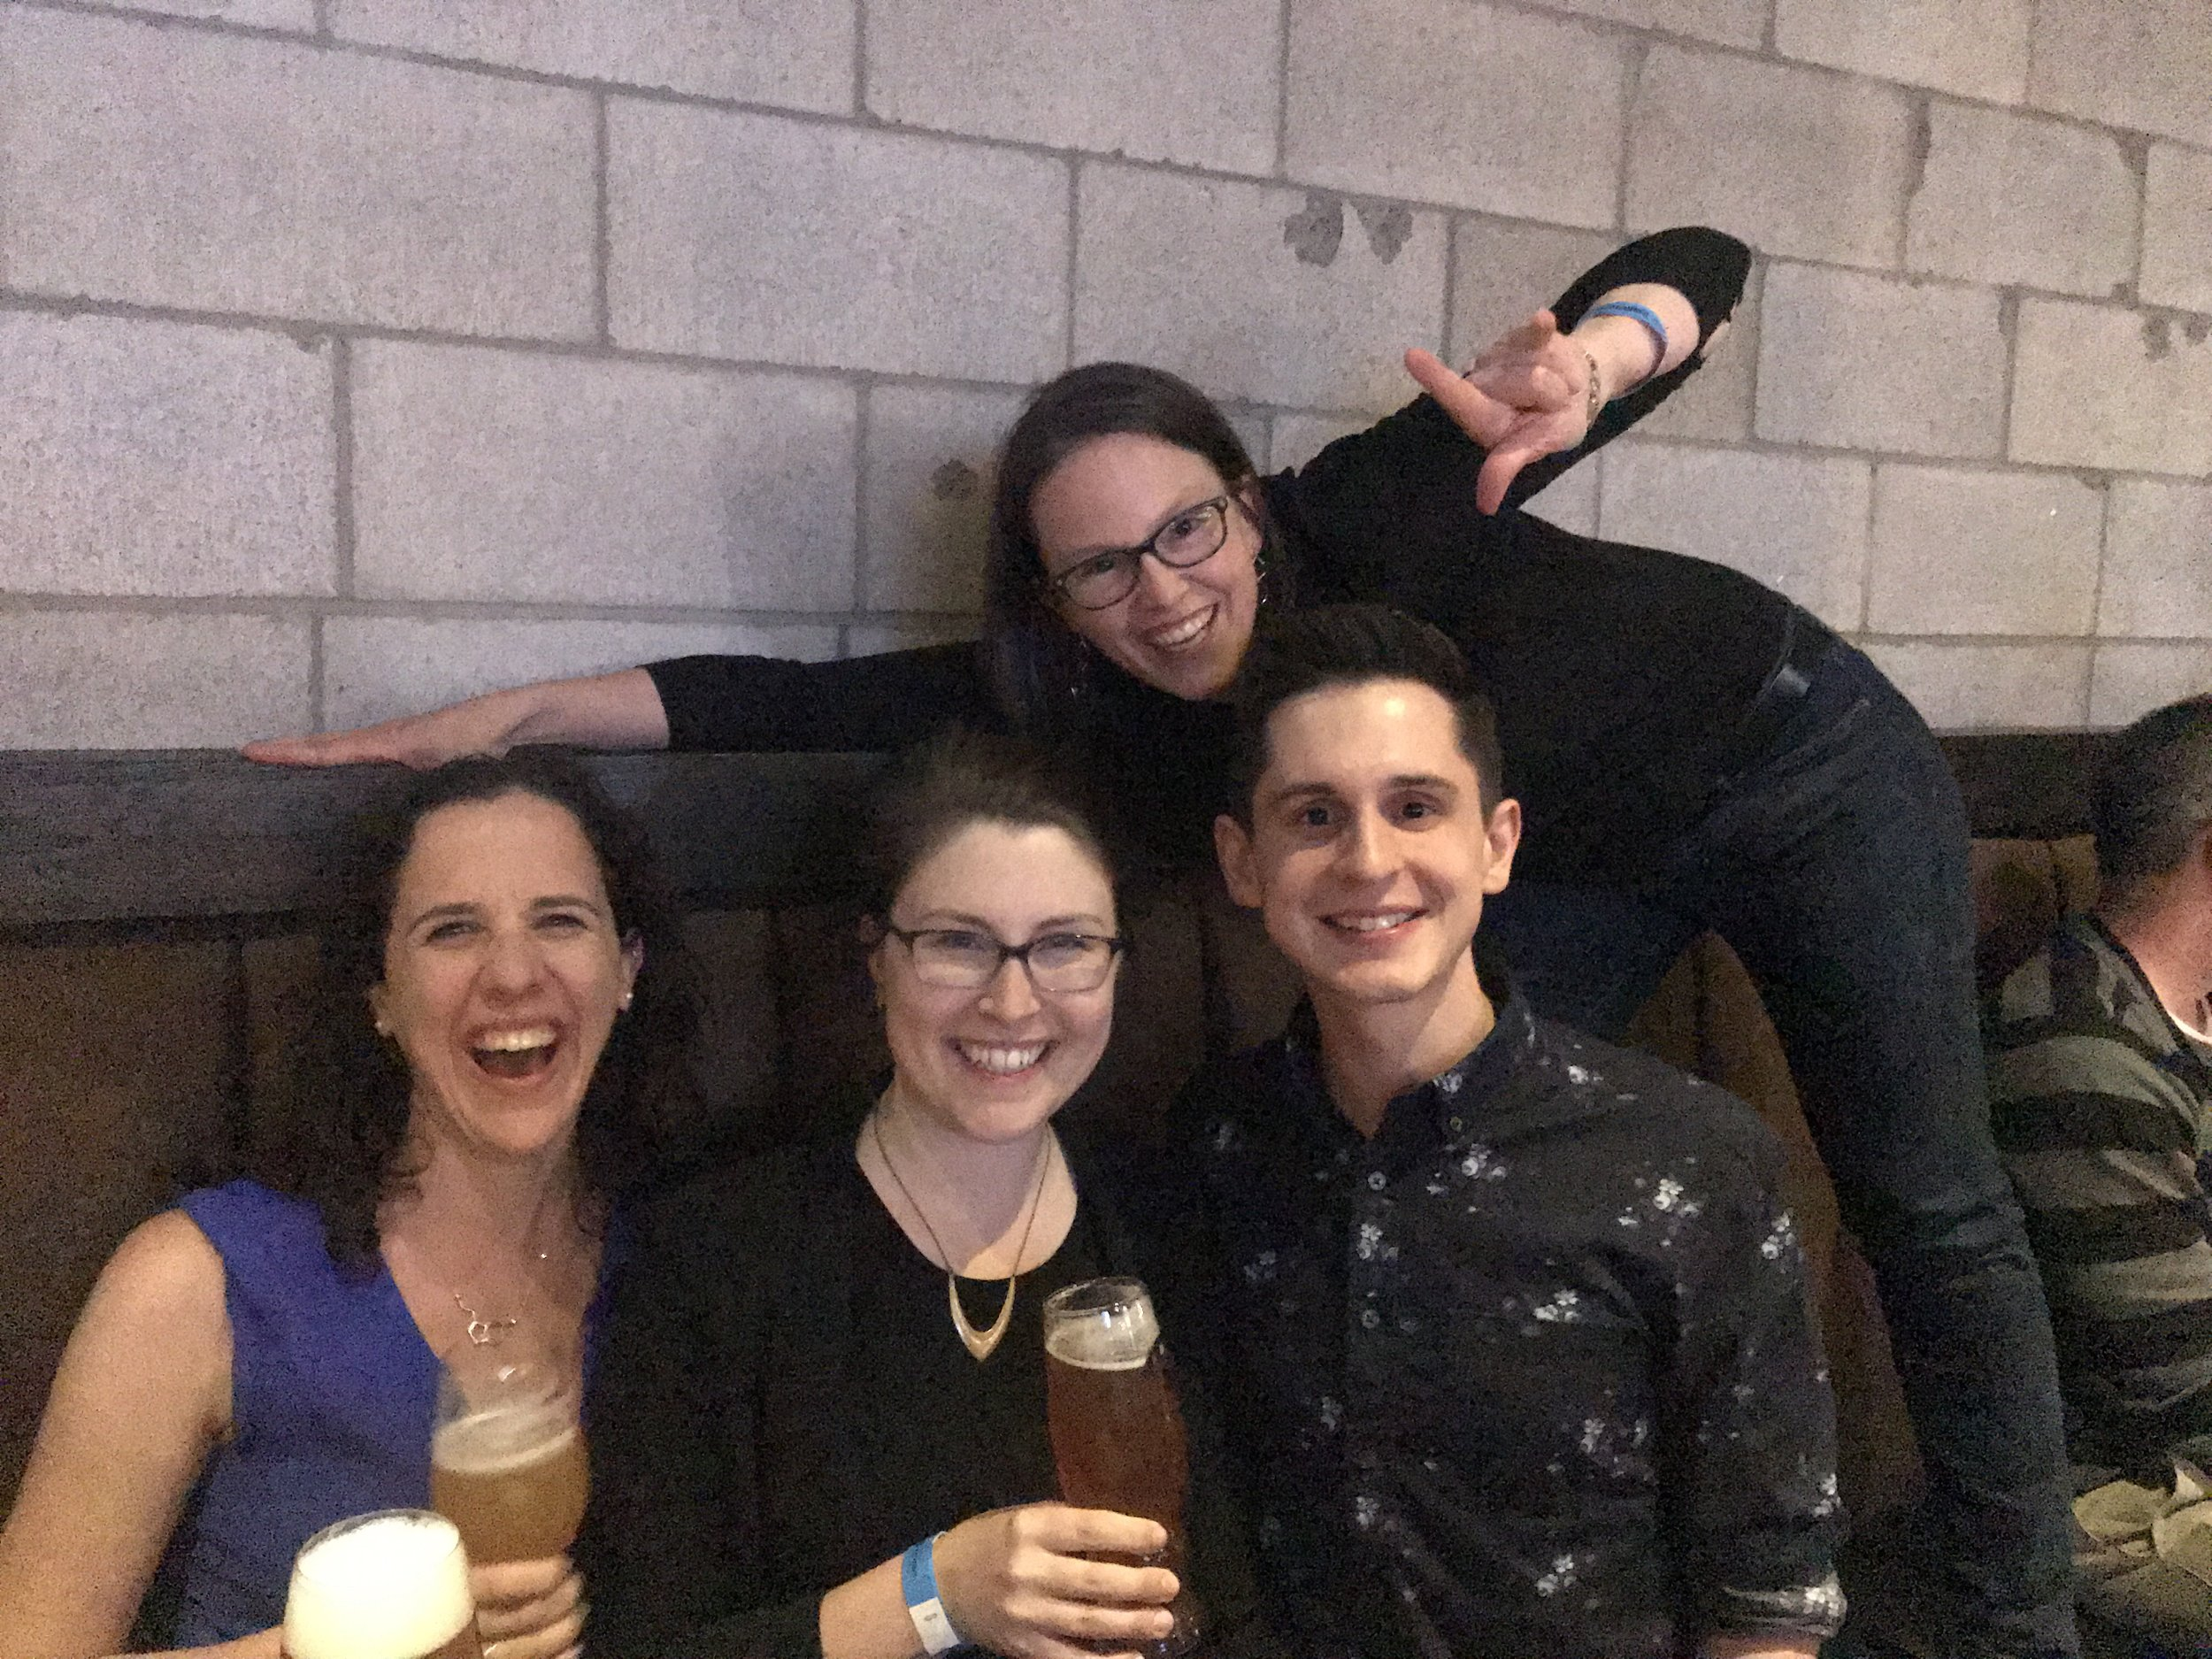 Myriam, Amanda,Keith, and Alison celebrating a great week of presentations at the 101st Canadian Chemistry Conference and Exhibition!